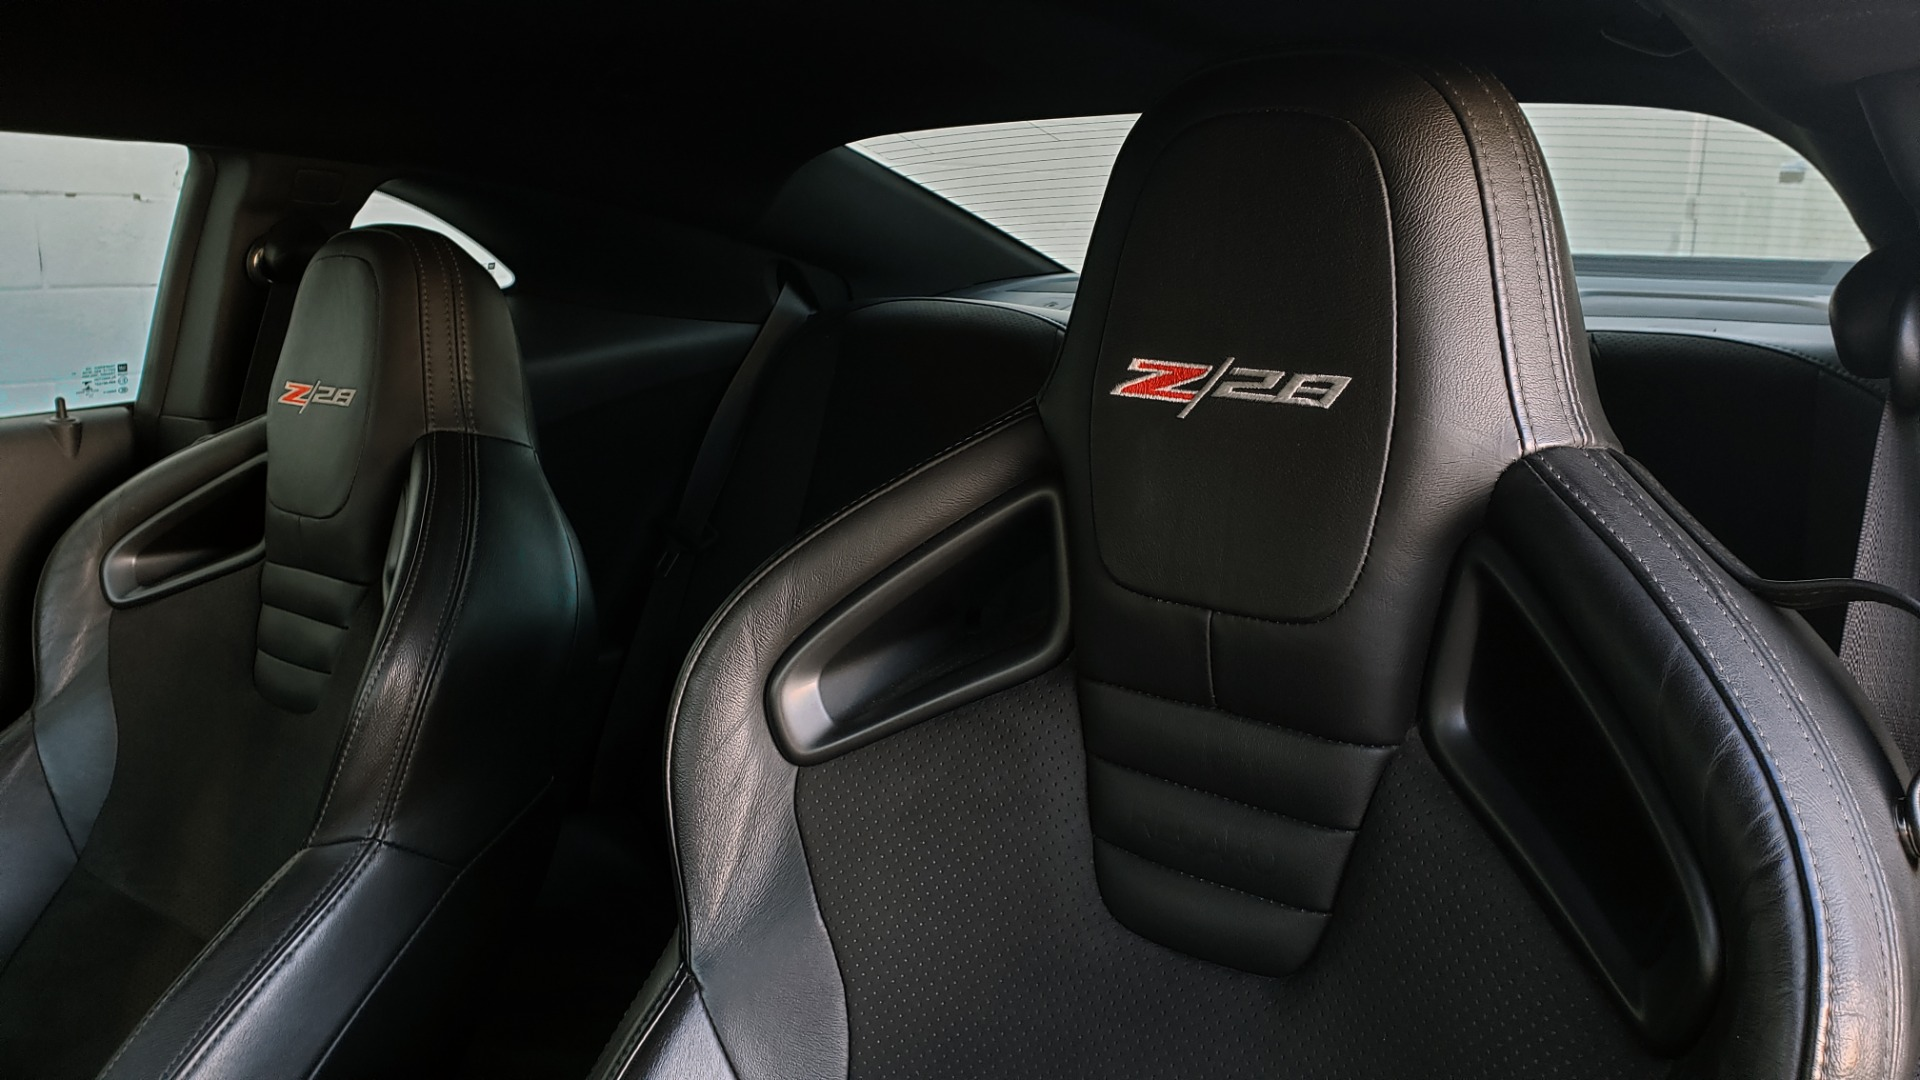 Used 2014 Chevrolet CAMARO Z/28 / 427 7.0L V8 505HP / RADIO / AIR CONDITIONING for sale Sold at Formula Imports in Charlotte NC 28227 53